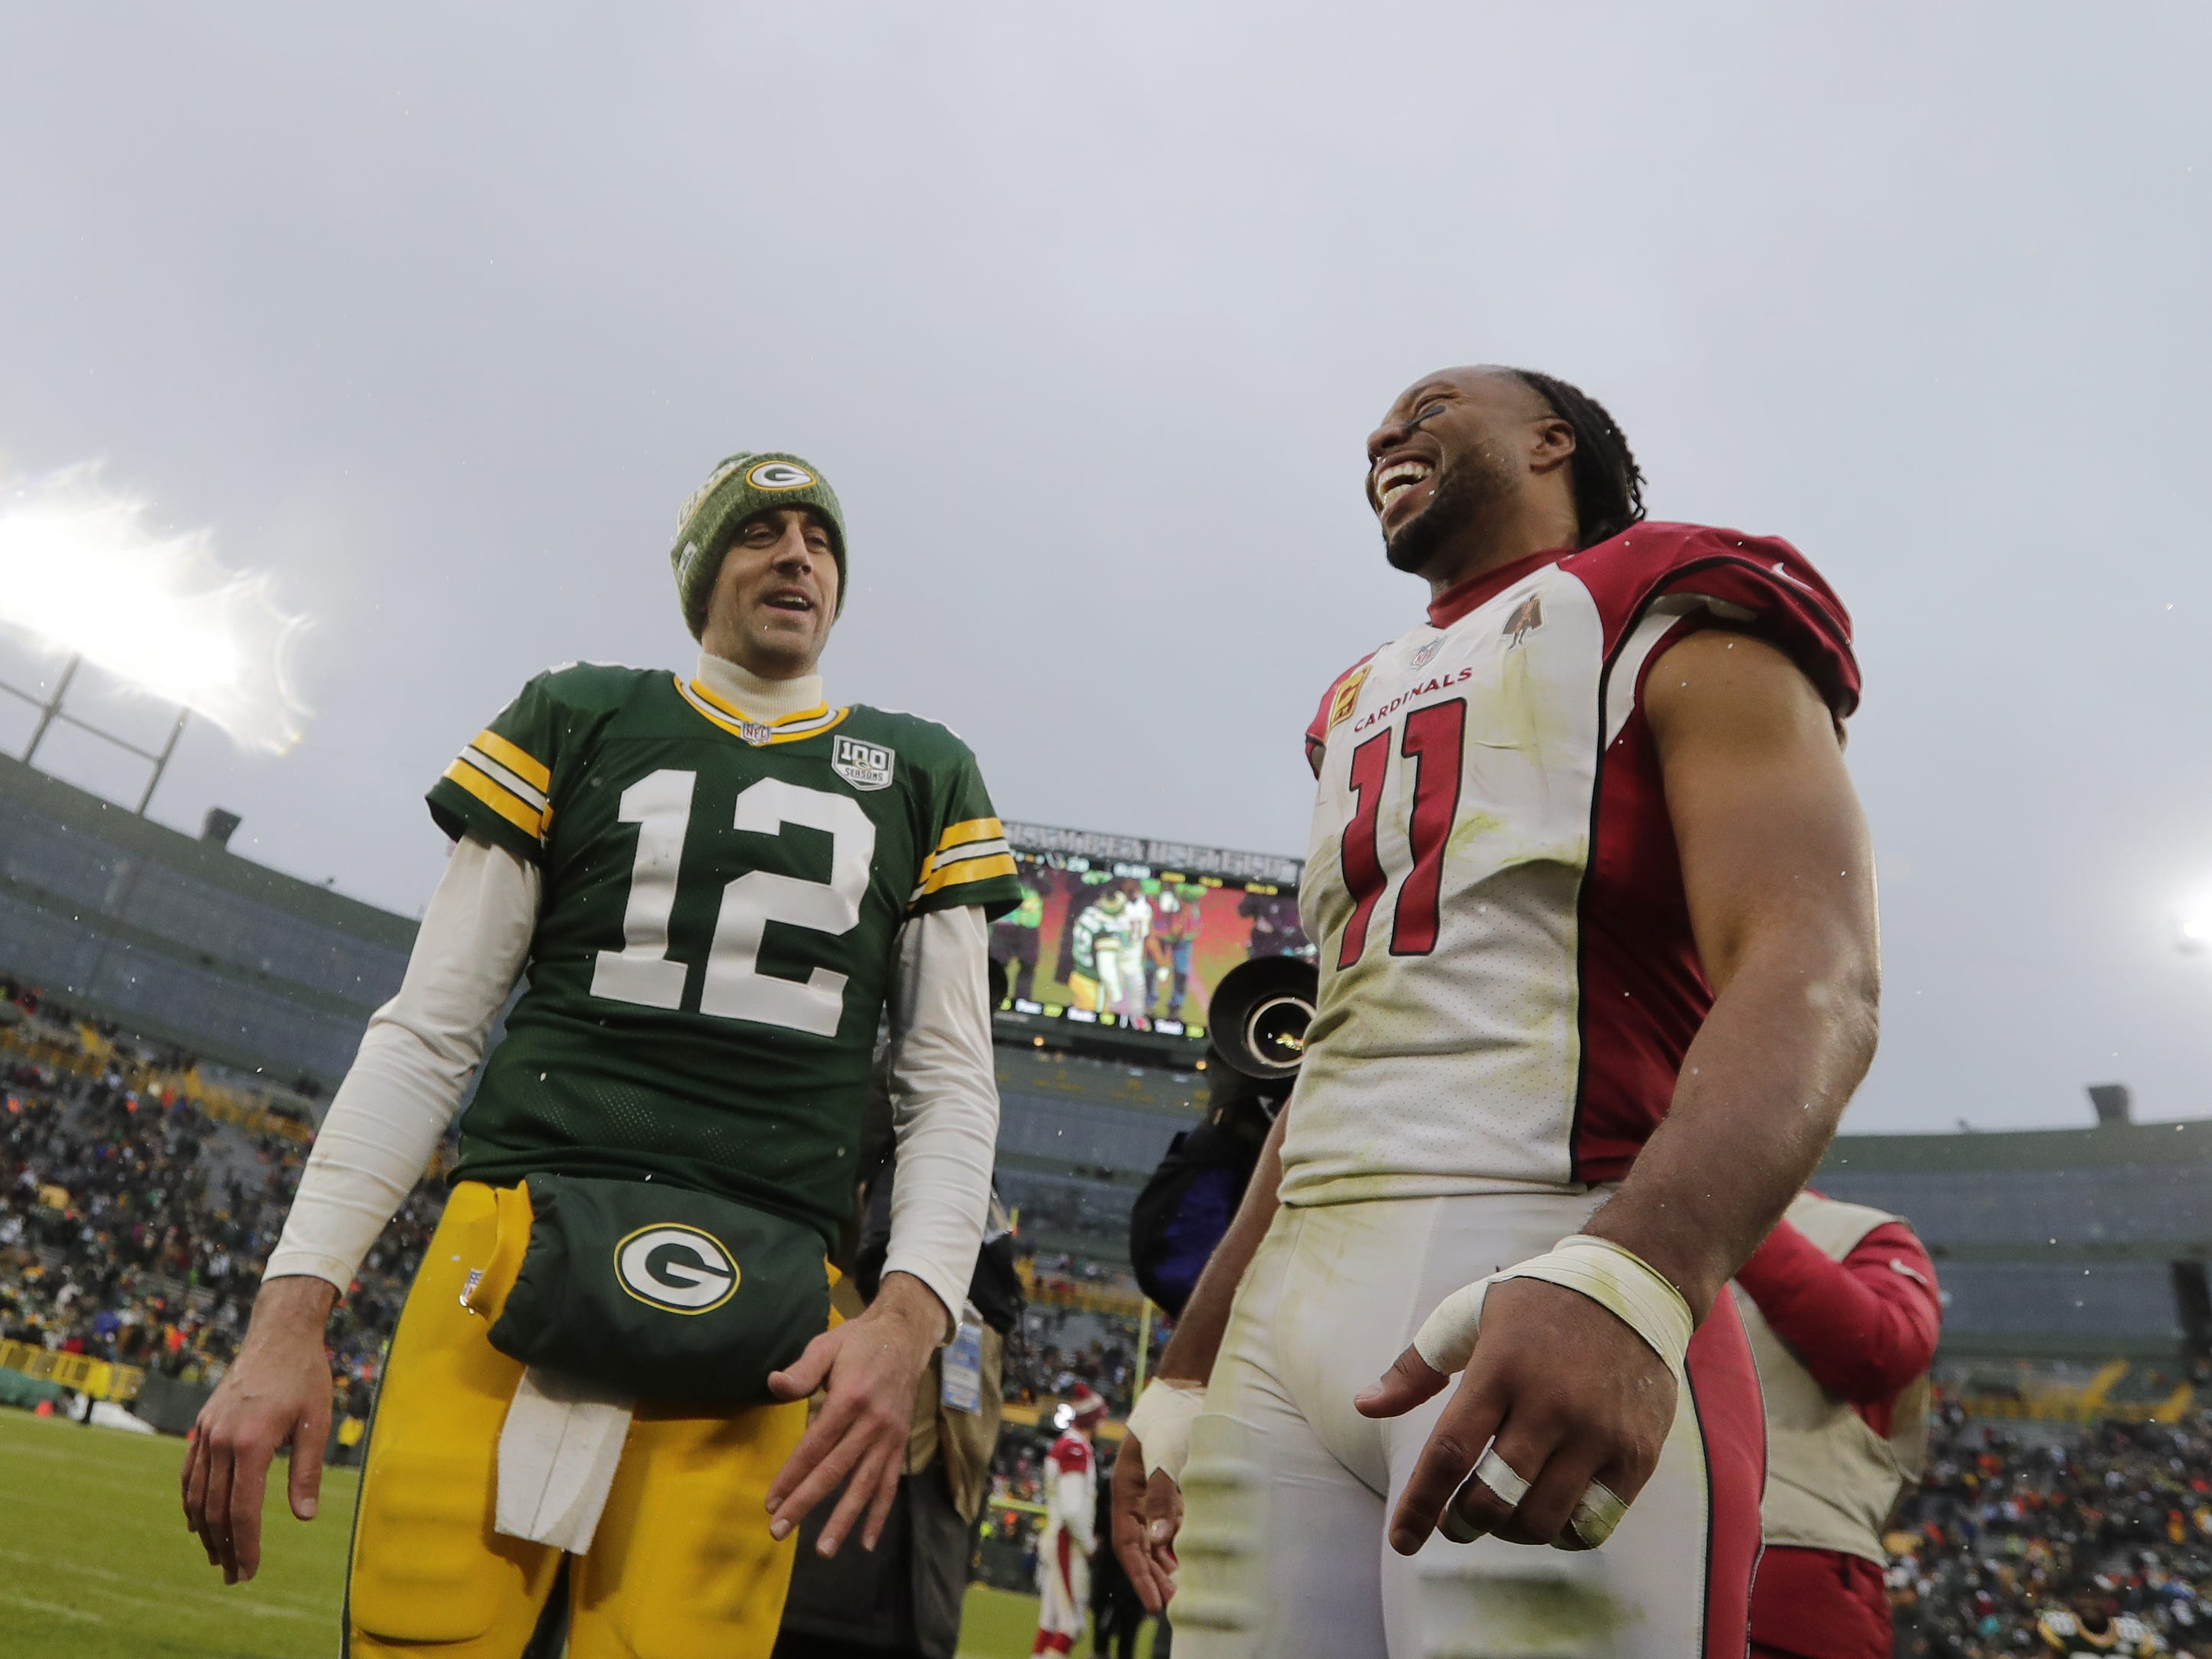 Green Bay Packers quarterback Aaron Rodgers (12) talks with Arizona Cardinals wide receiver Larry Fitzgerald (11) after the Cardinals defeated the Packers at Lambeau Field on Sunday, December 2, 2018 in Green Bay, Wis.